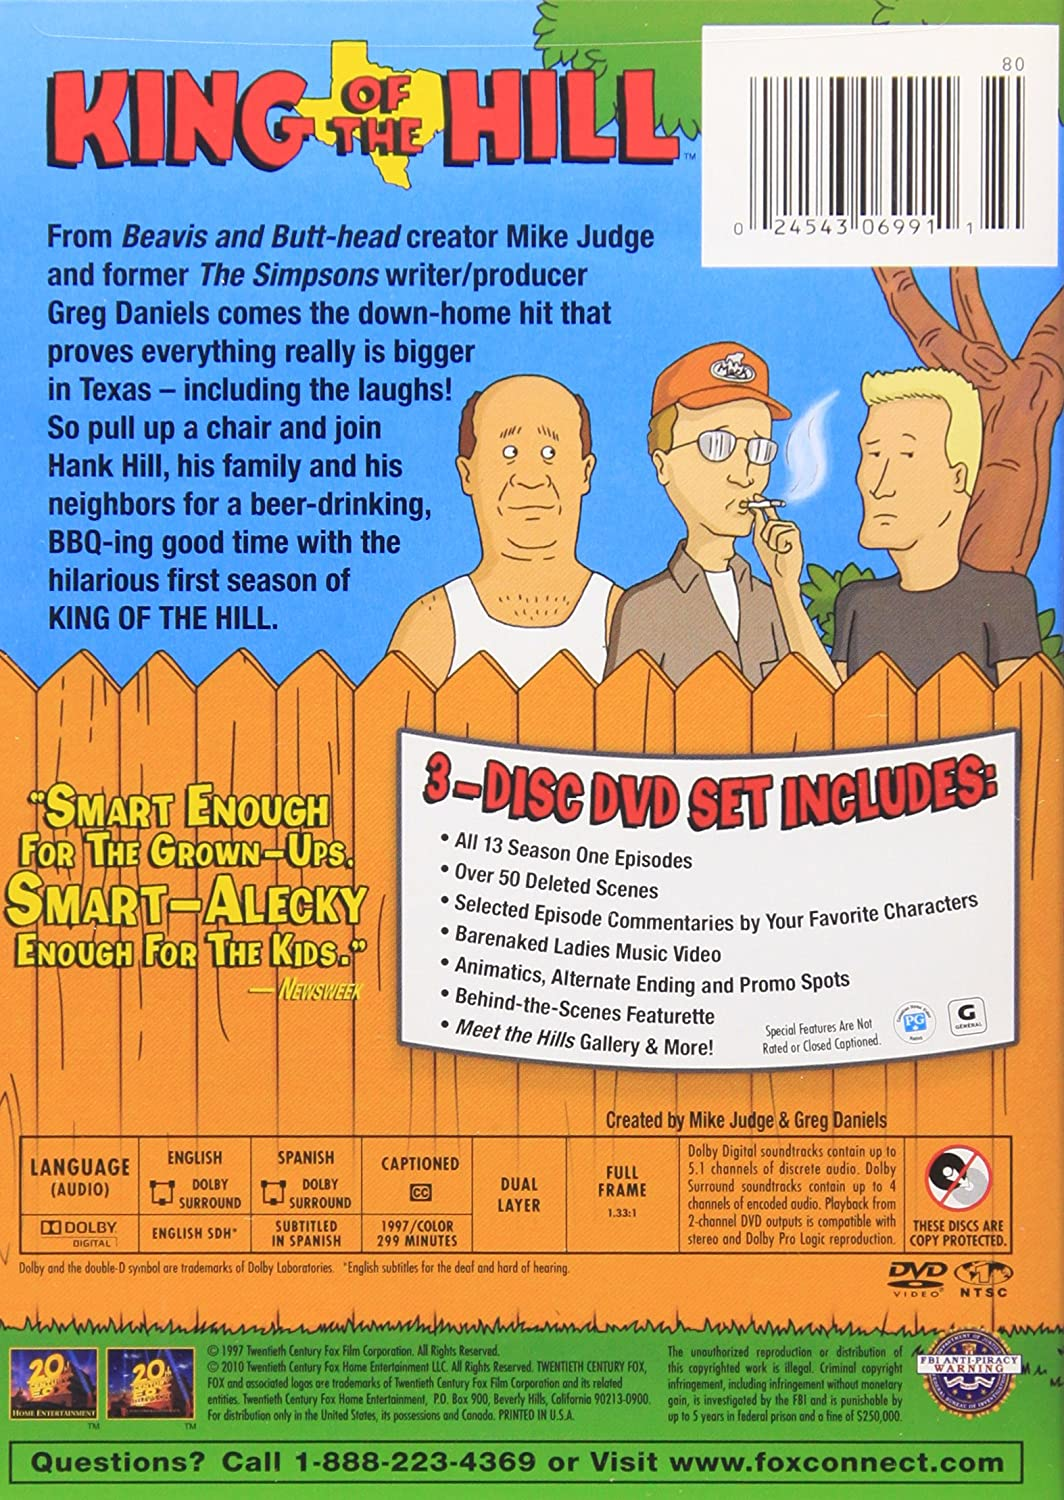 Amazon.com: King of the Hill - The Complete First Season: Mike Judge ...